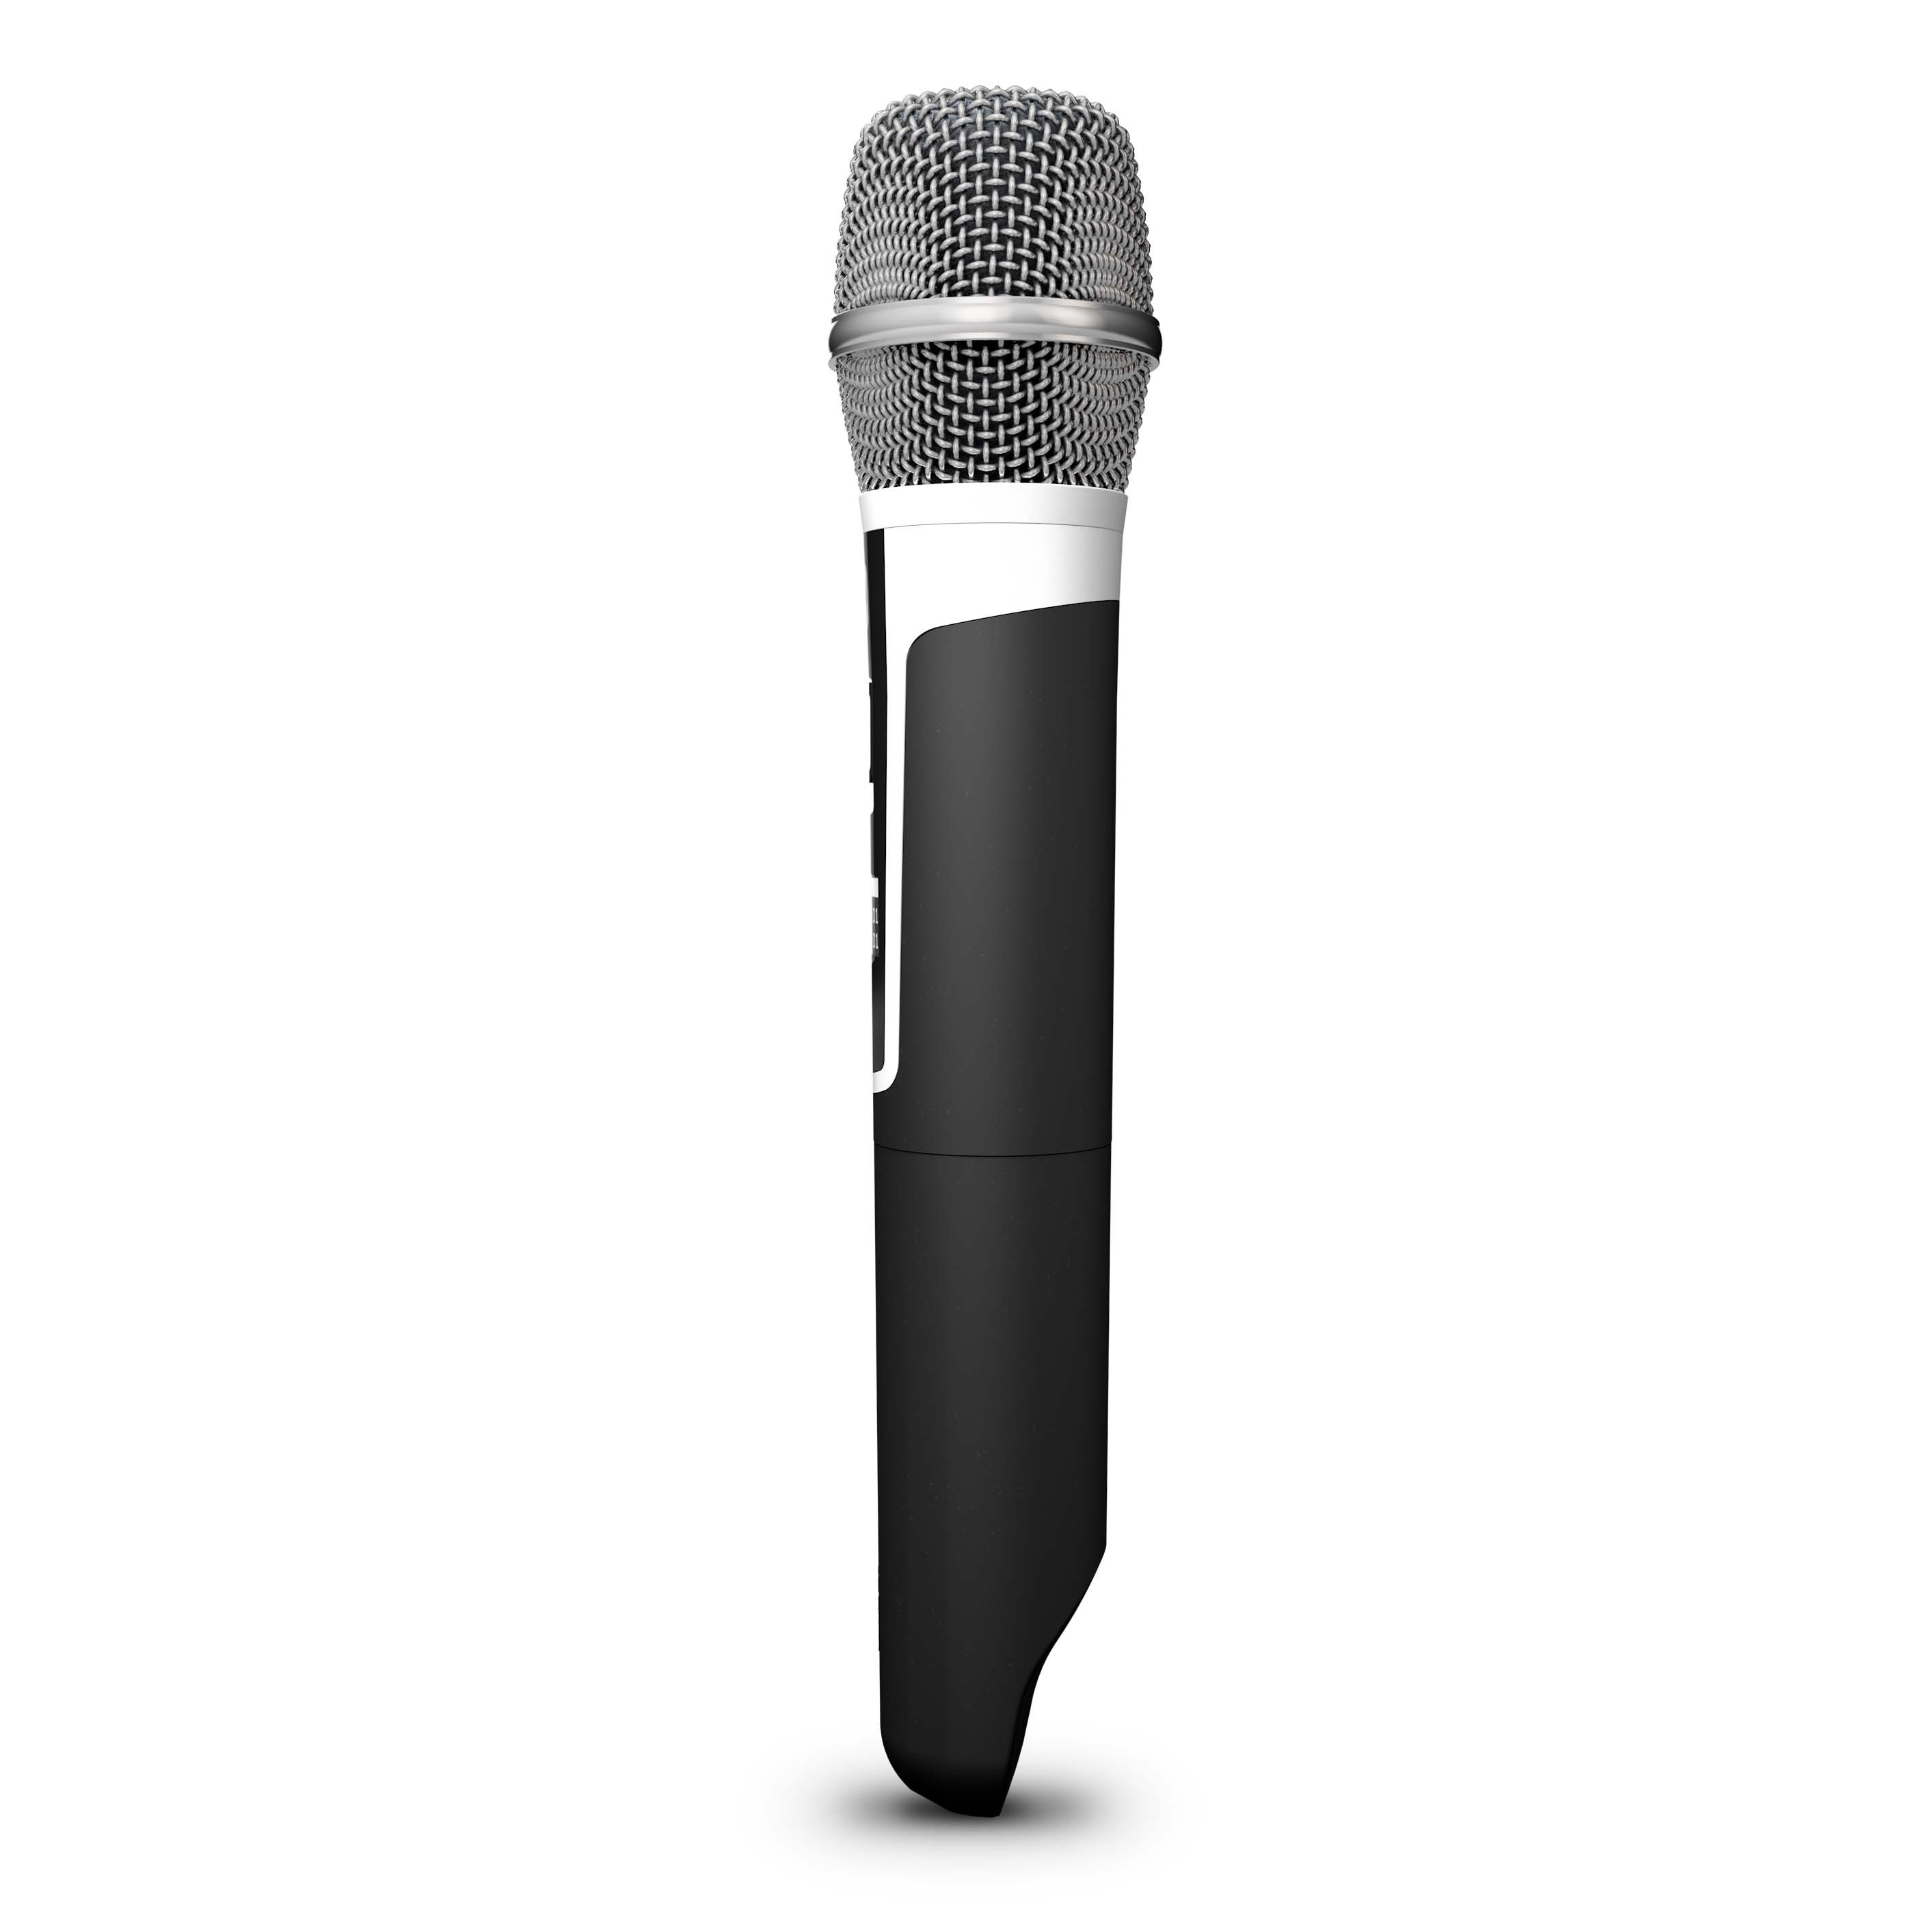 U506 UK MC Condenser handheld microphone